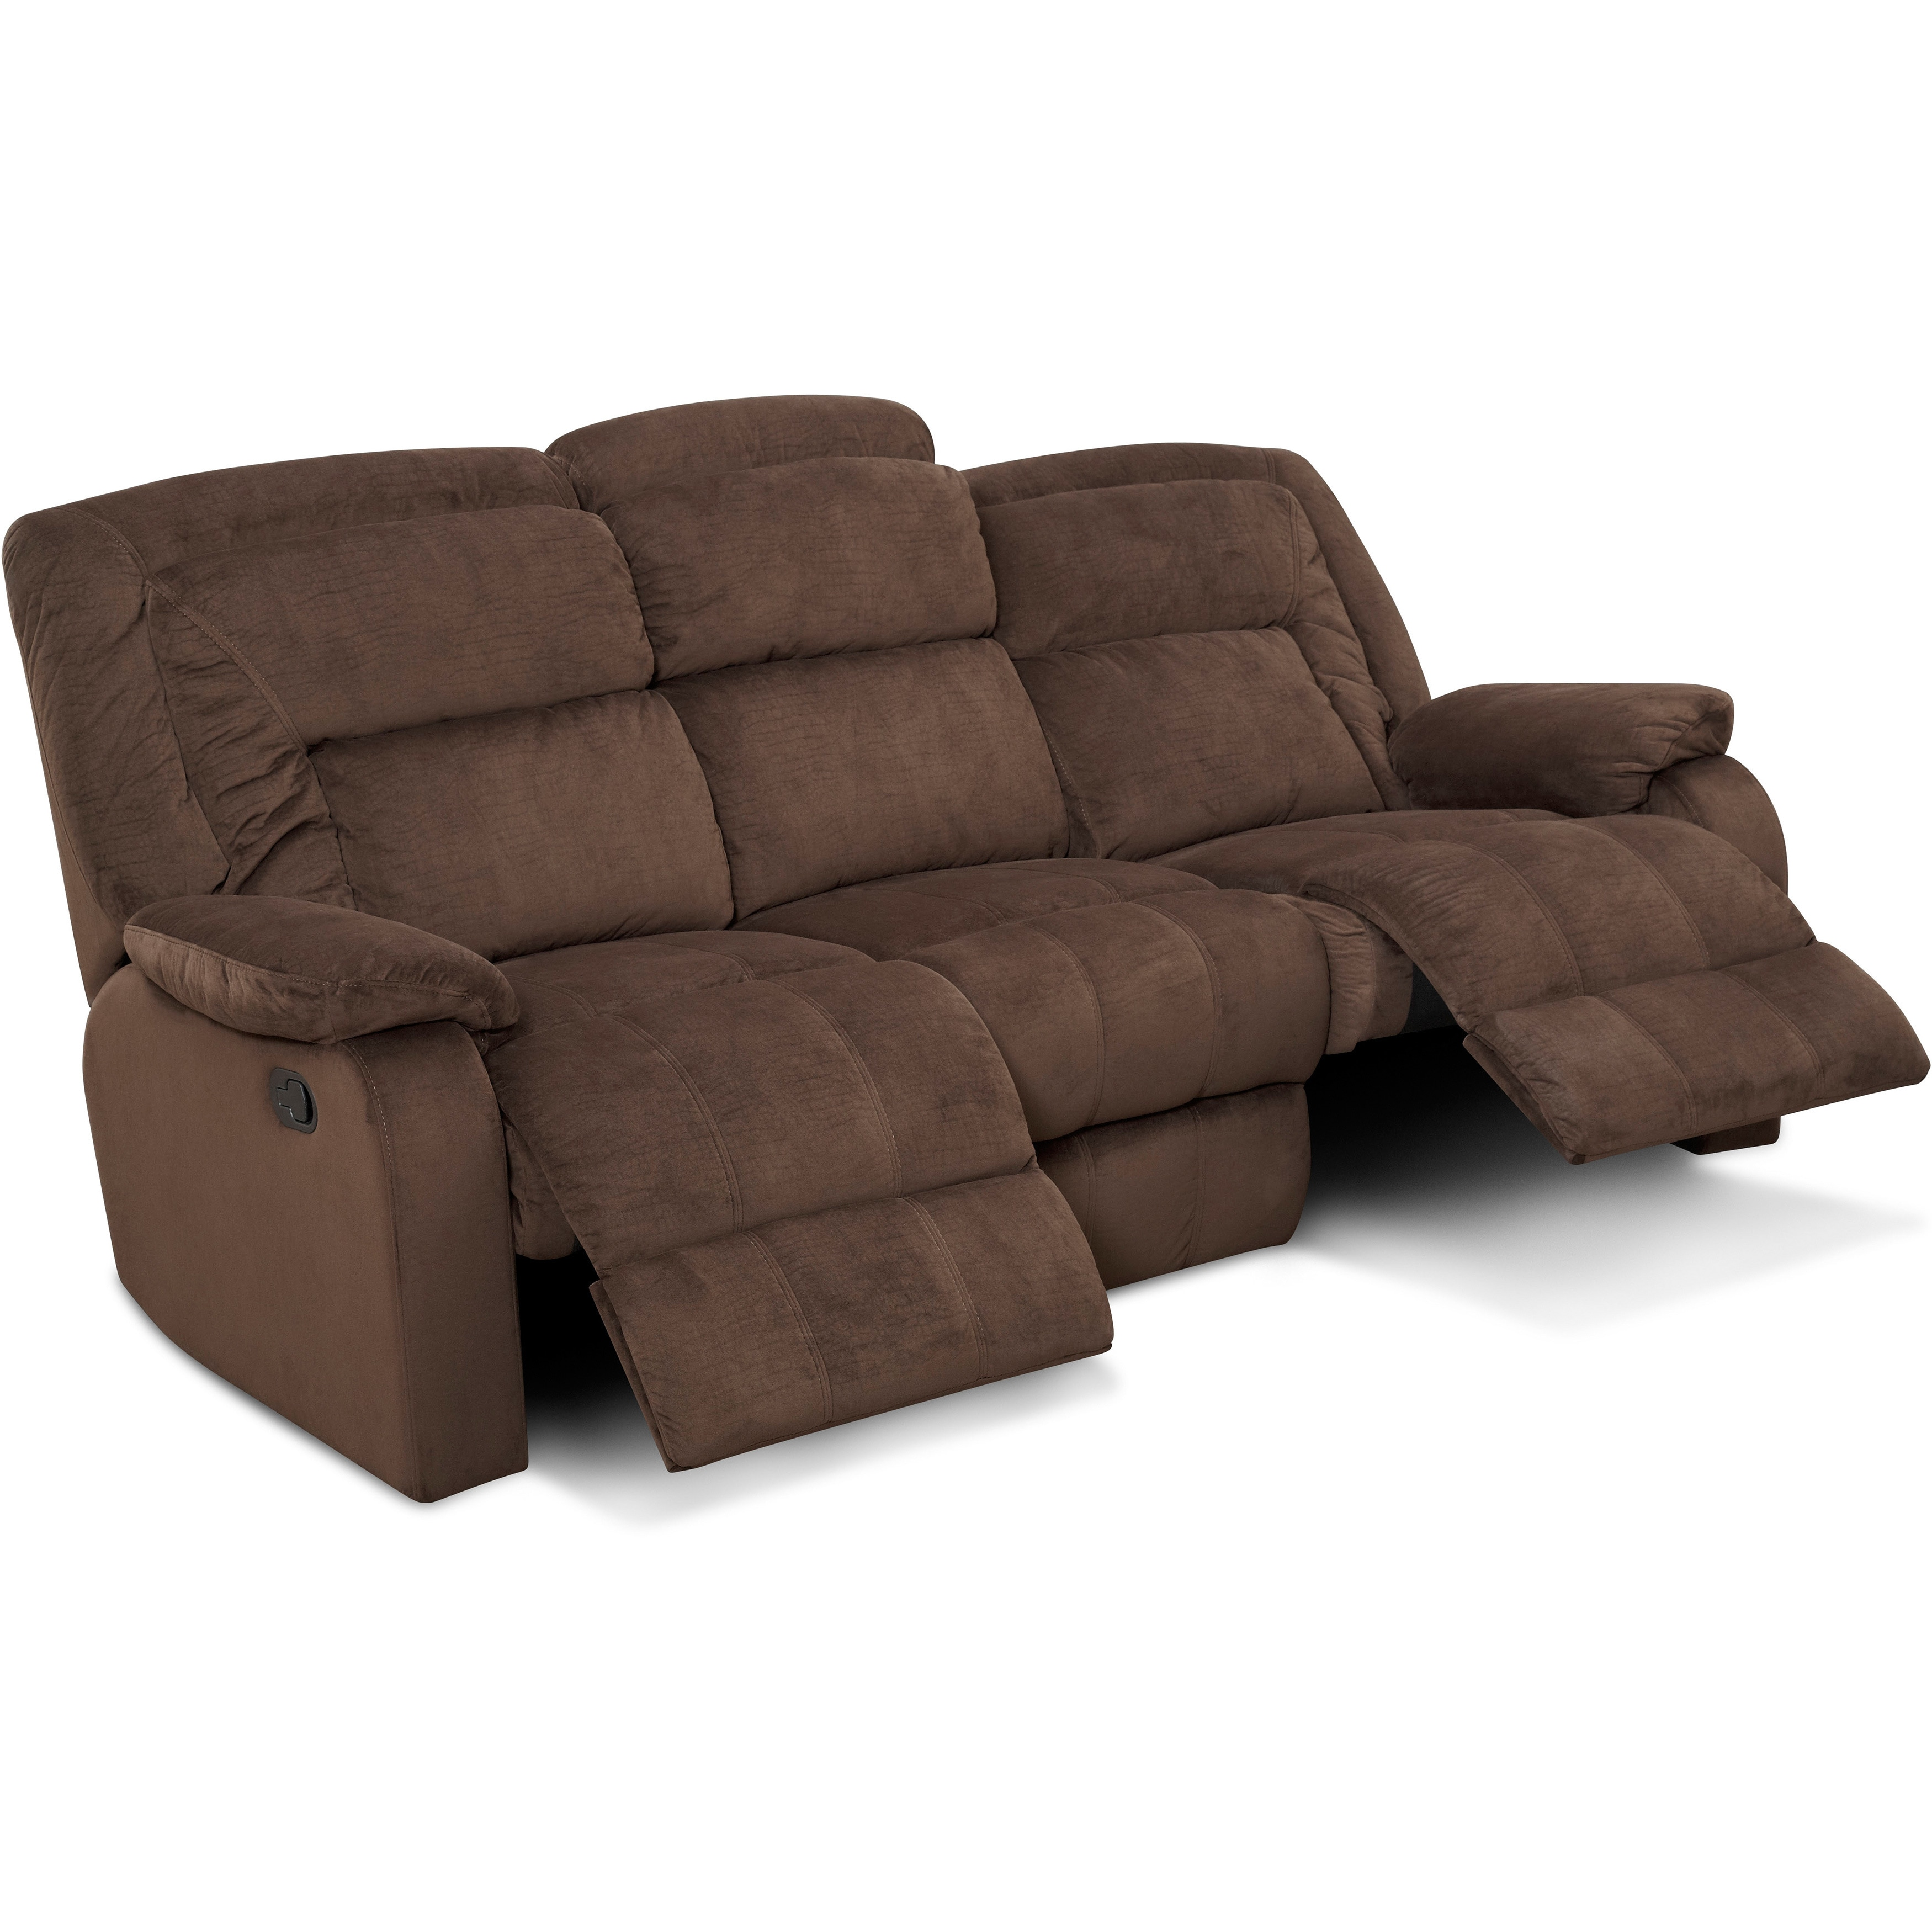 Donna Mocha Sectional Sofa Review Home Co